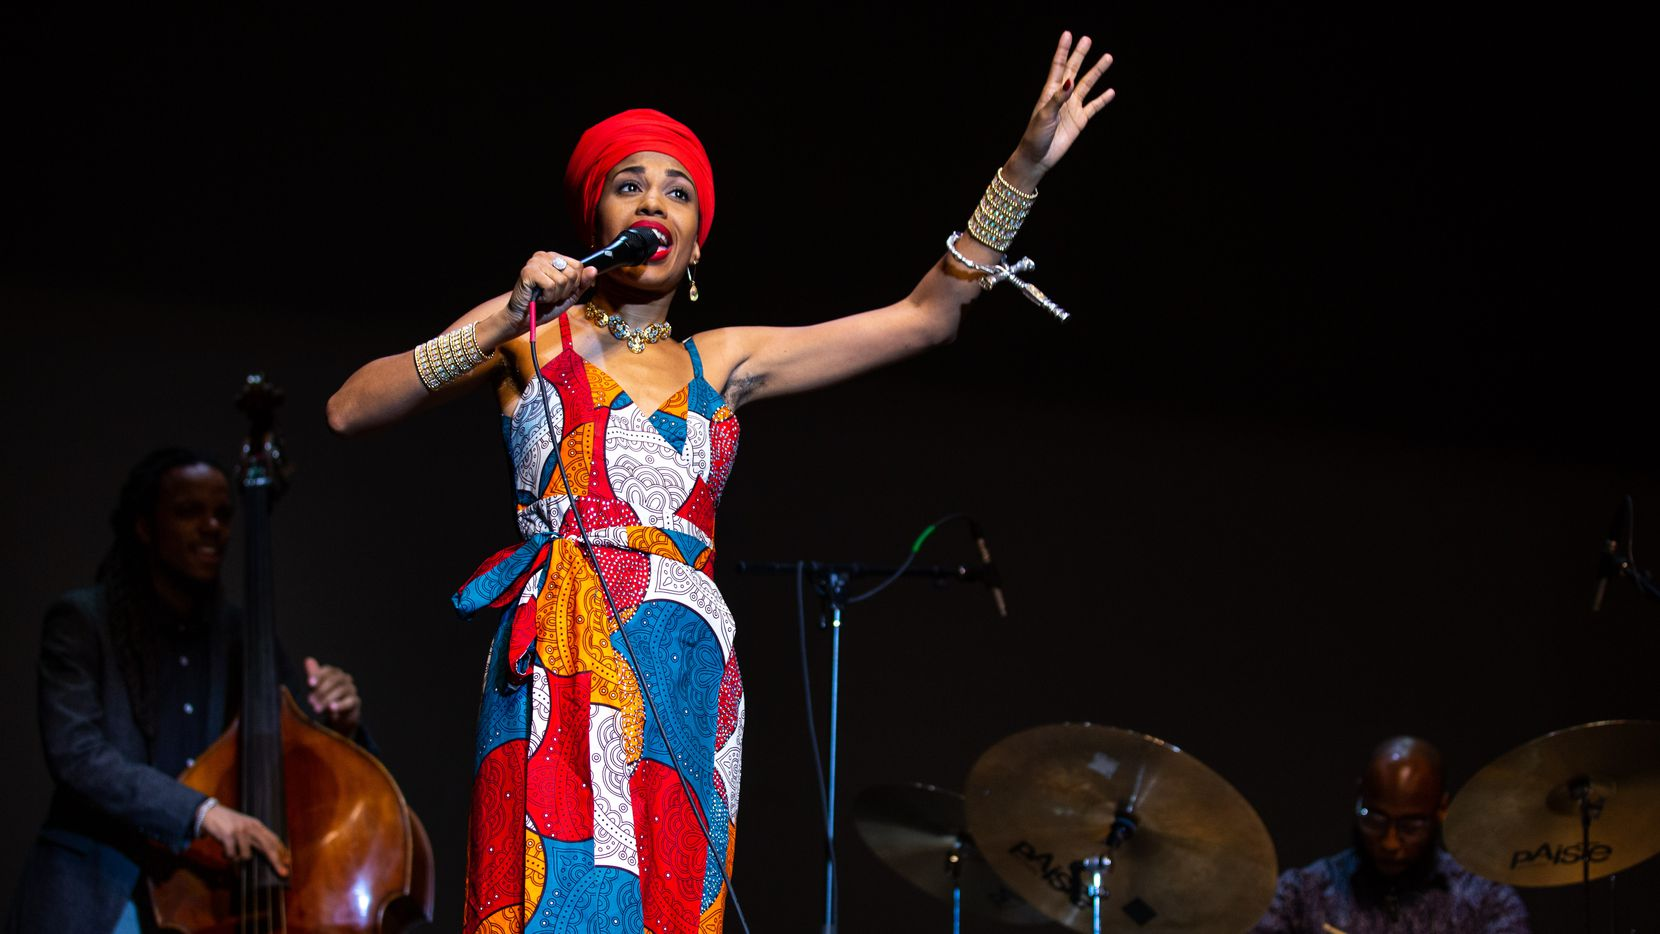 Grammy-nominated jazz singer Jazzmeia Horn performs for the Denton Black Film Festival at the Margo Jones Performance Hall at Texas Woman's University on Jan. 23, 2020.